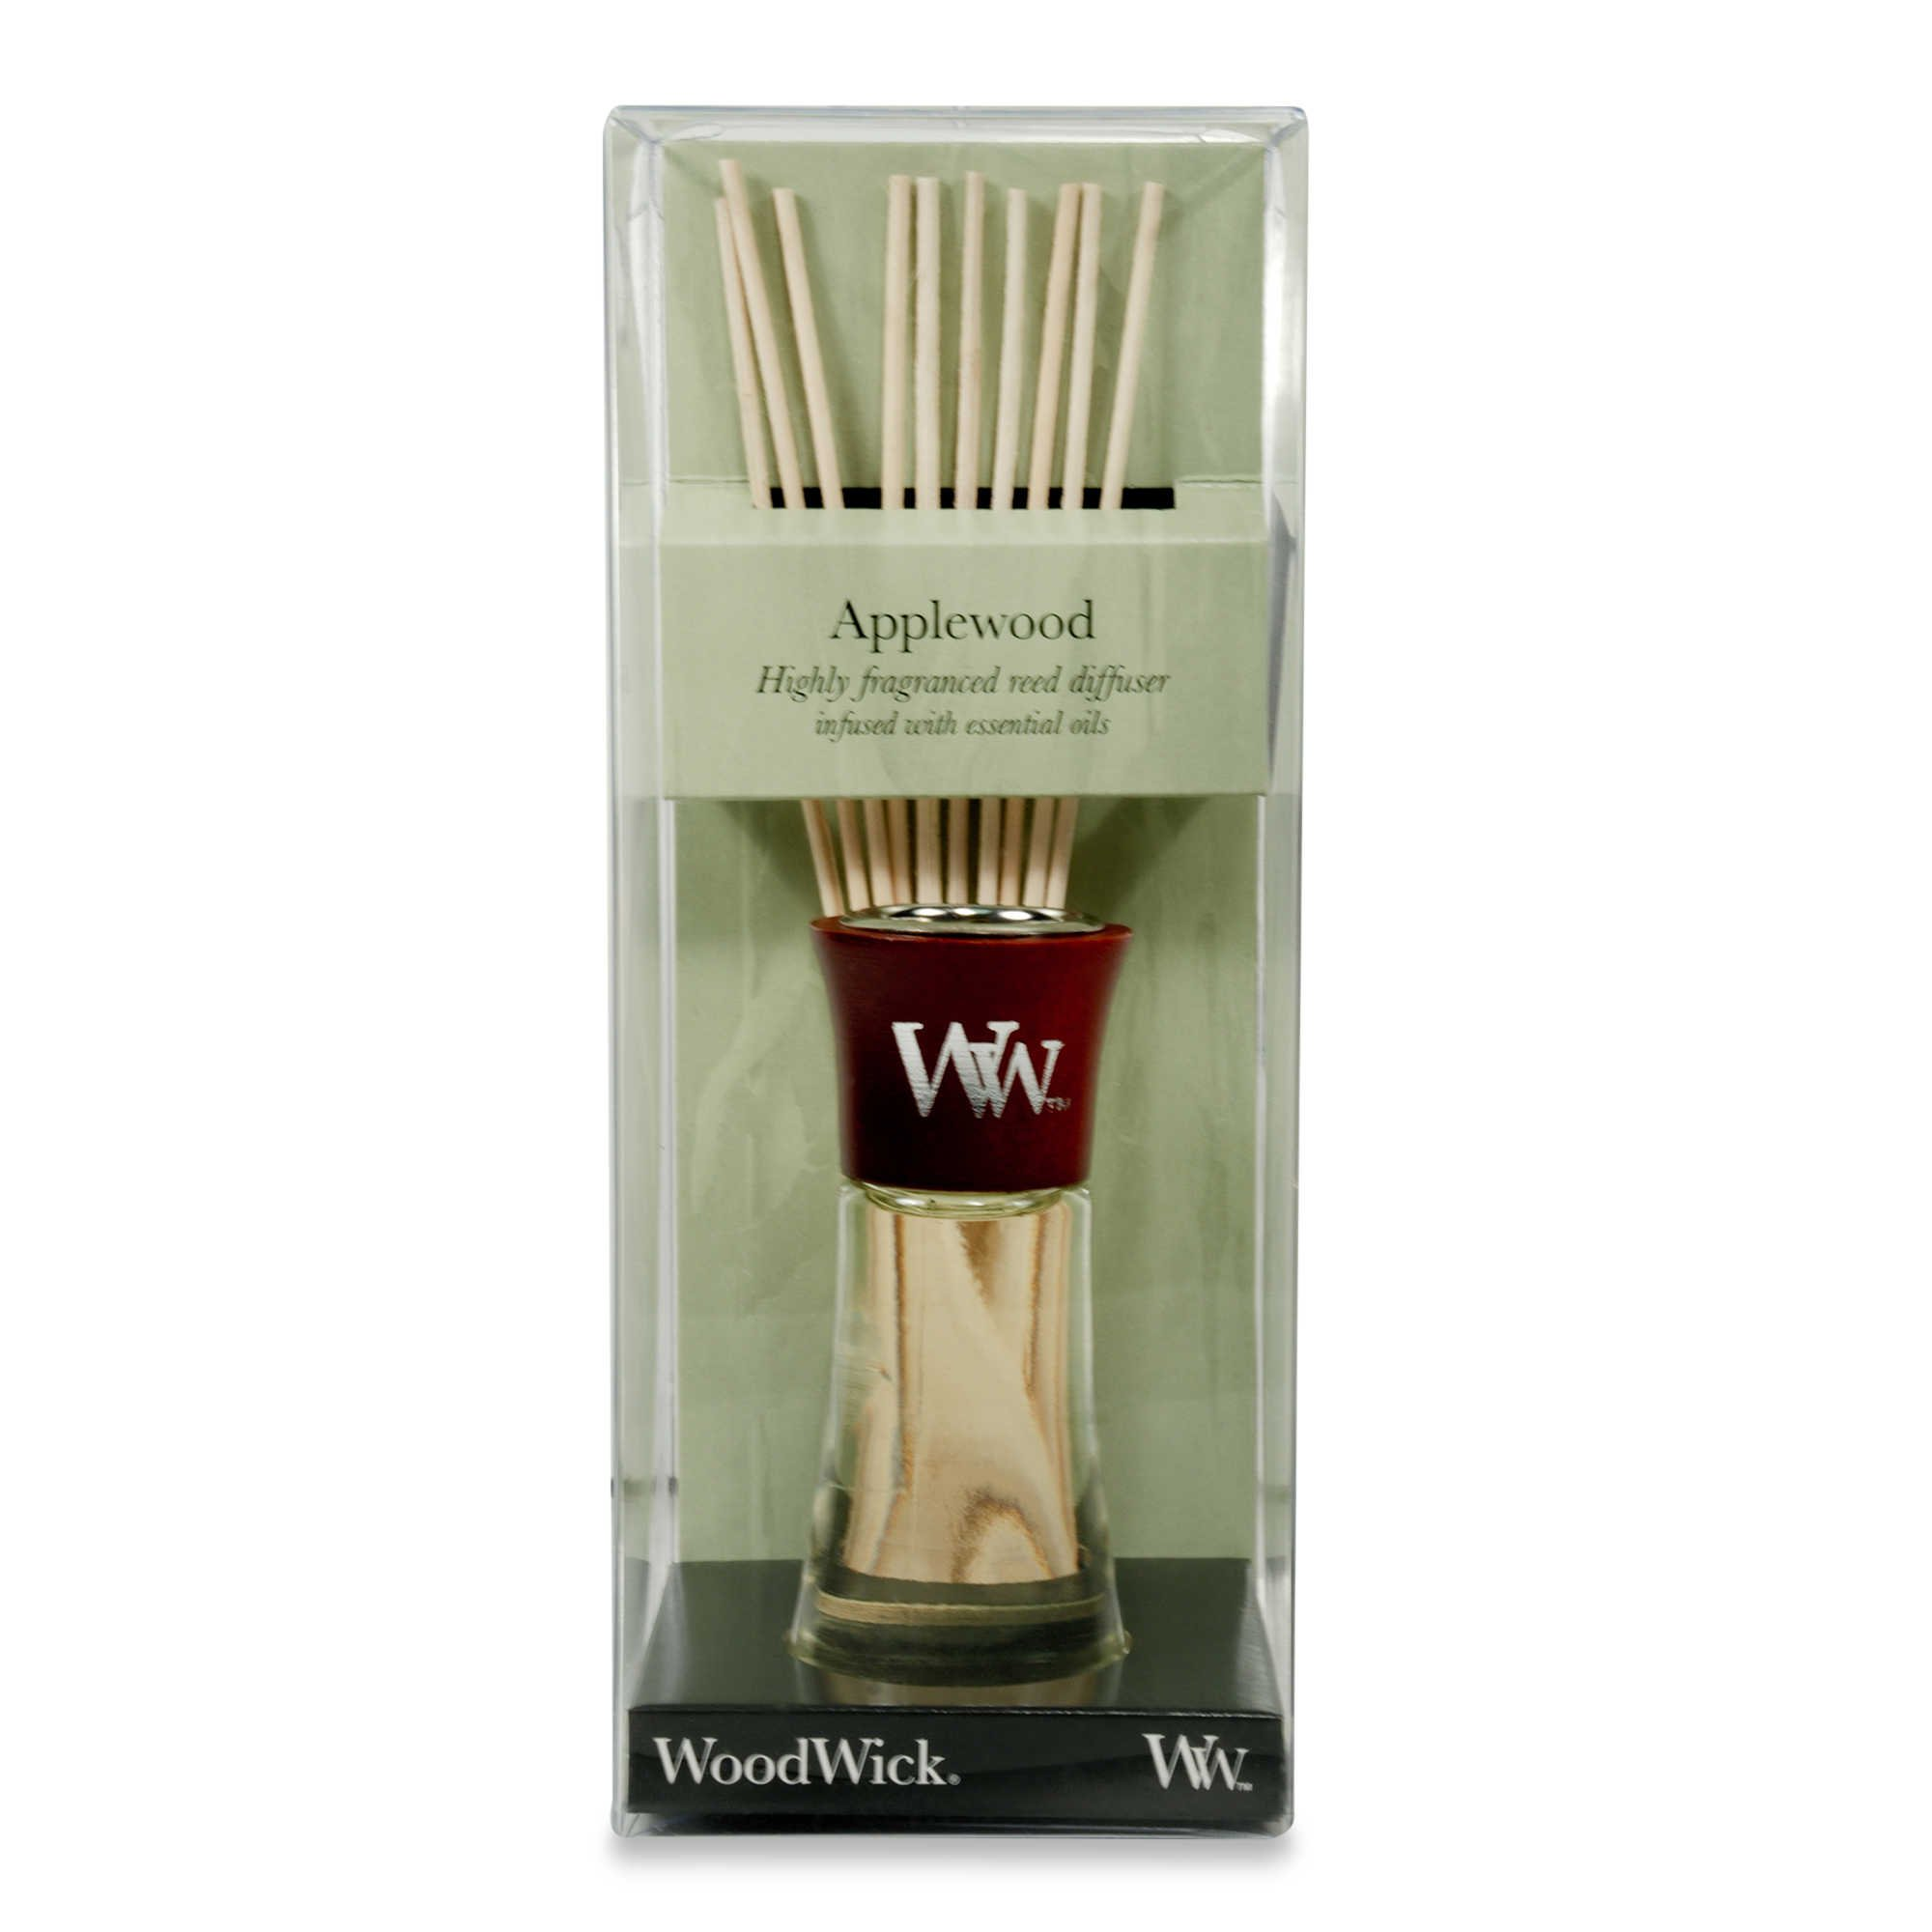 WoodWick Applewood Small Reed Diffuser